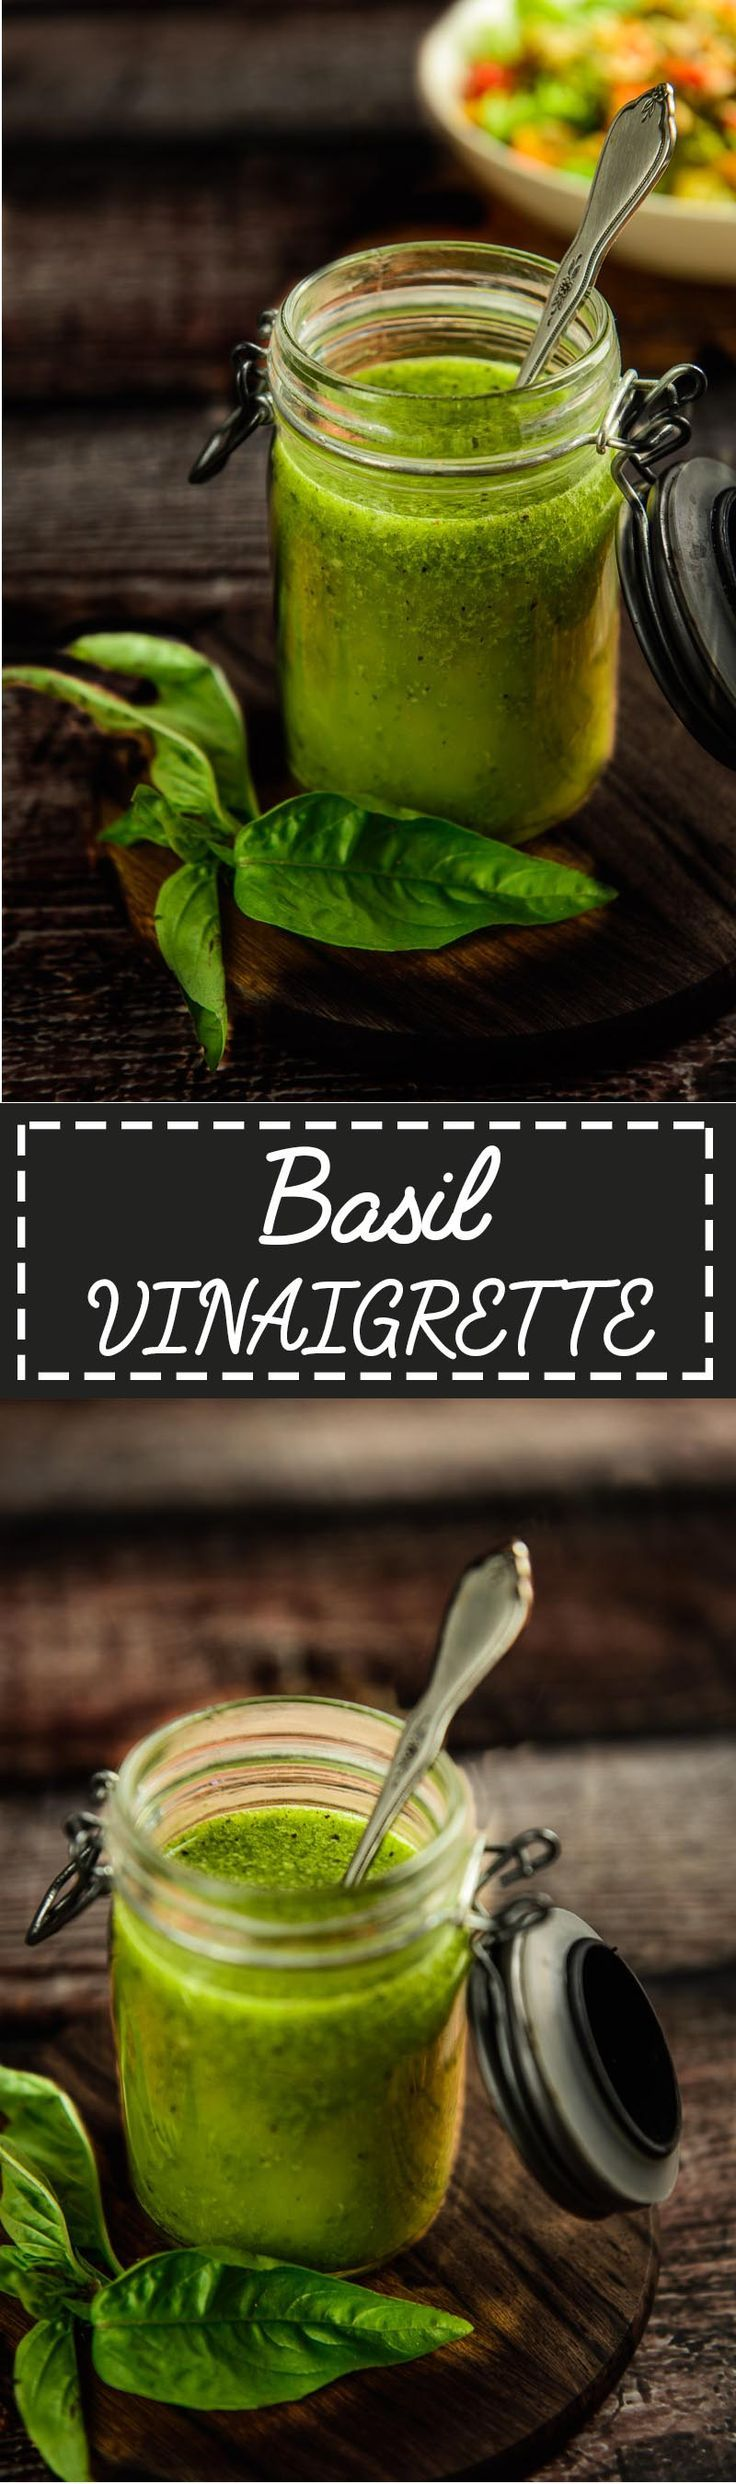 Basil Vinaigrette Is A Simple And Healthy Salad Dressing Made Using Fresh Basil Extra Virg Basil Vinaigrette Vinaigrette Recipes Easy Basil Vinaigrette Recipe [ 2484 x 736 Pixel ]